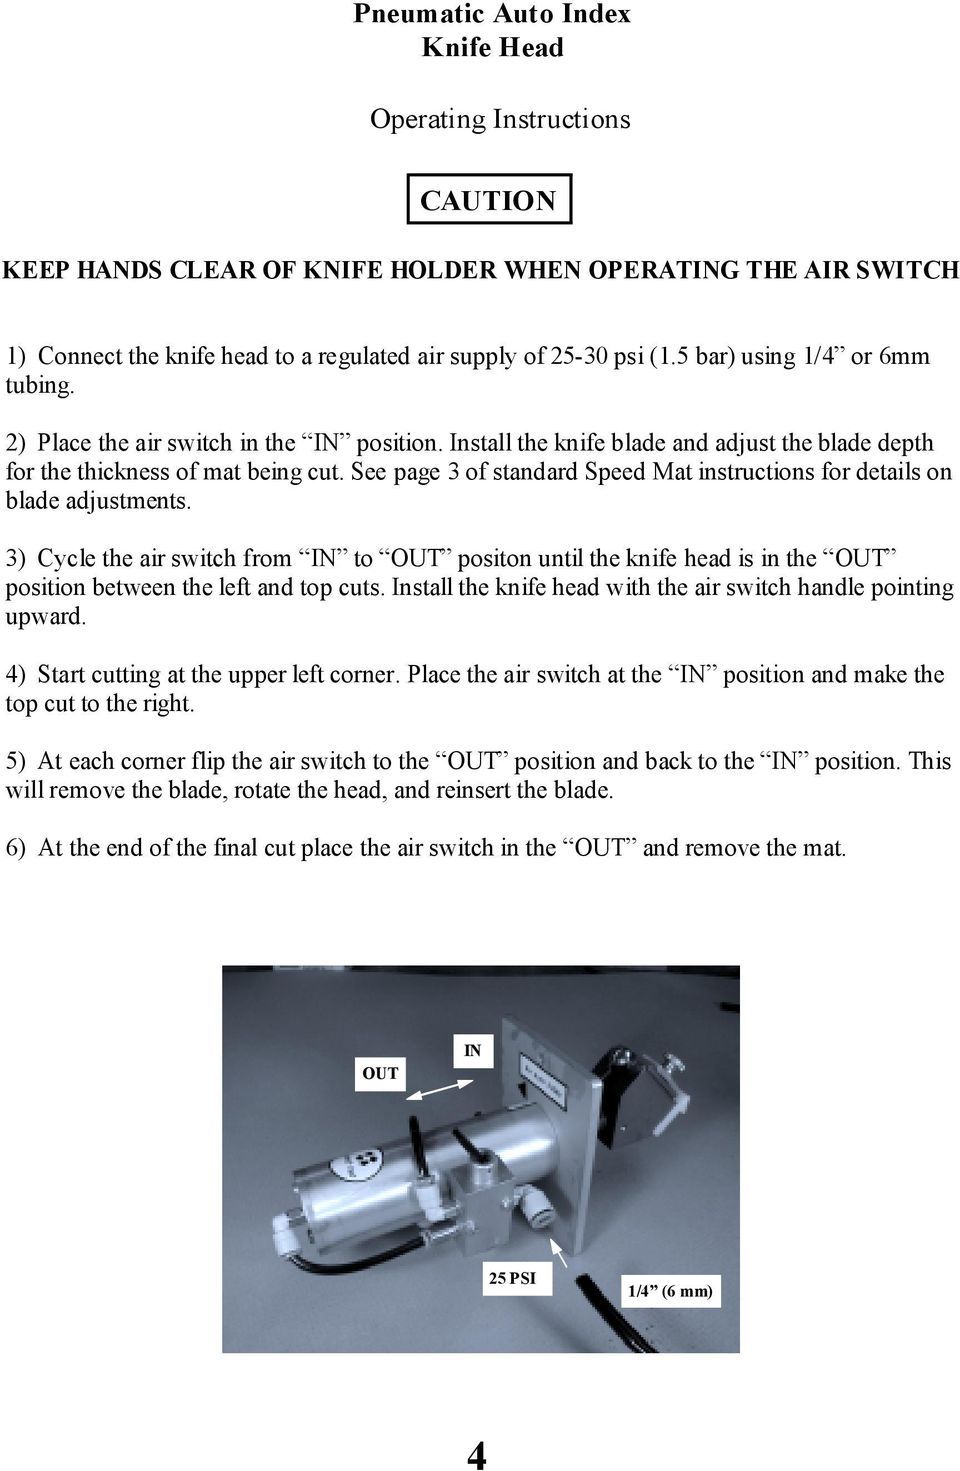 See page 3 of standard Speed Mat instructions for details on blade adjustments.